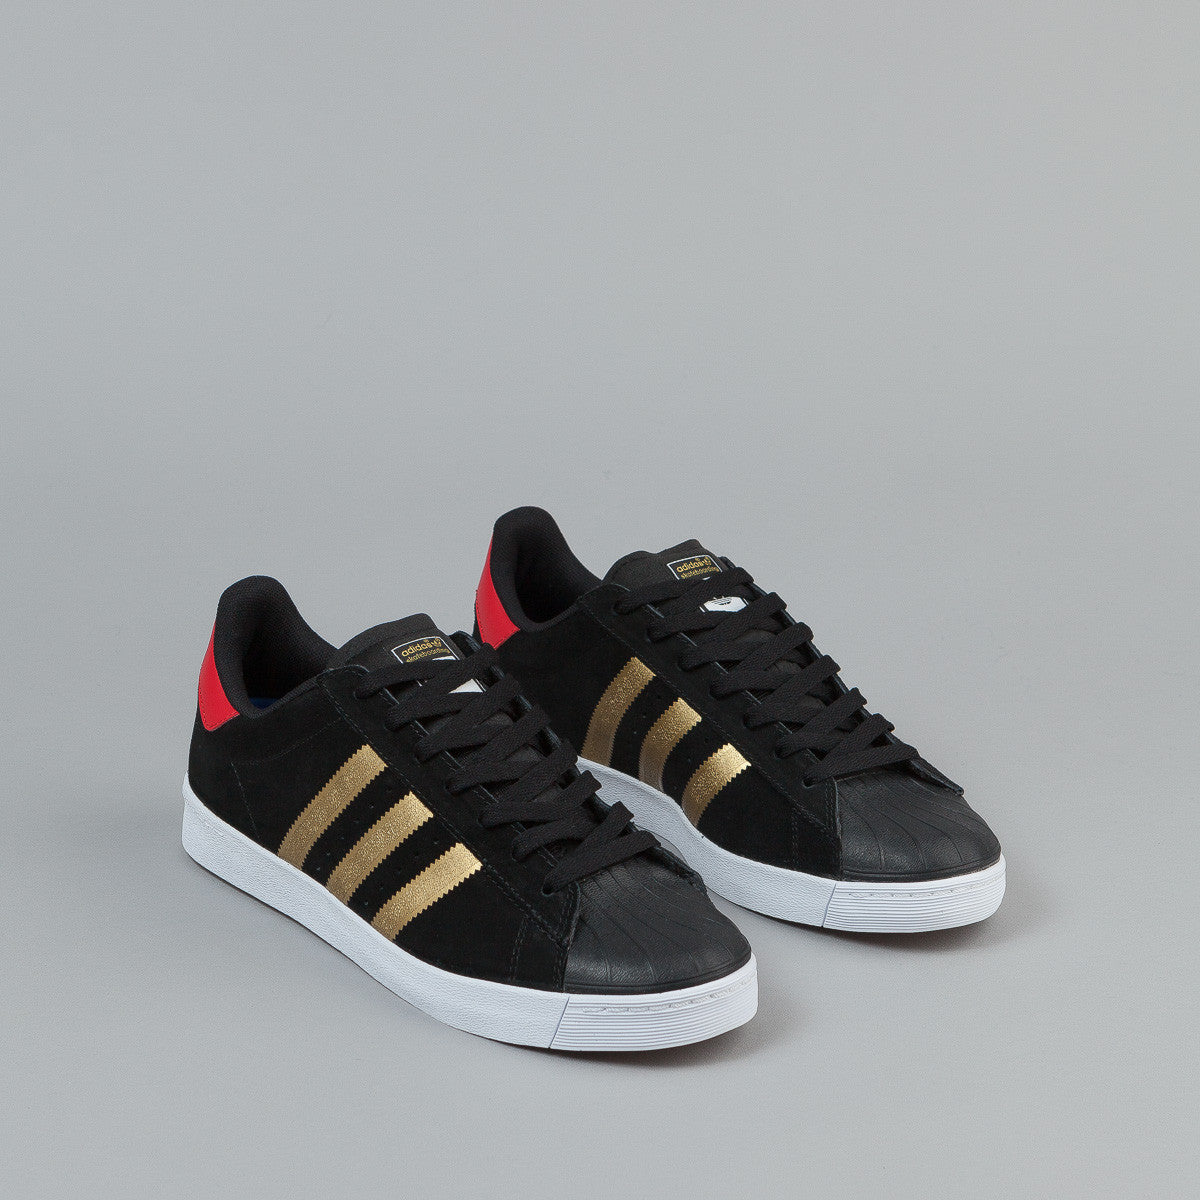 ADIDAS SUPERSTAR VULC ADV SKATE SHOE #B27392 WHITE